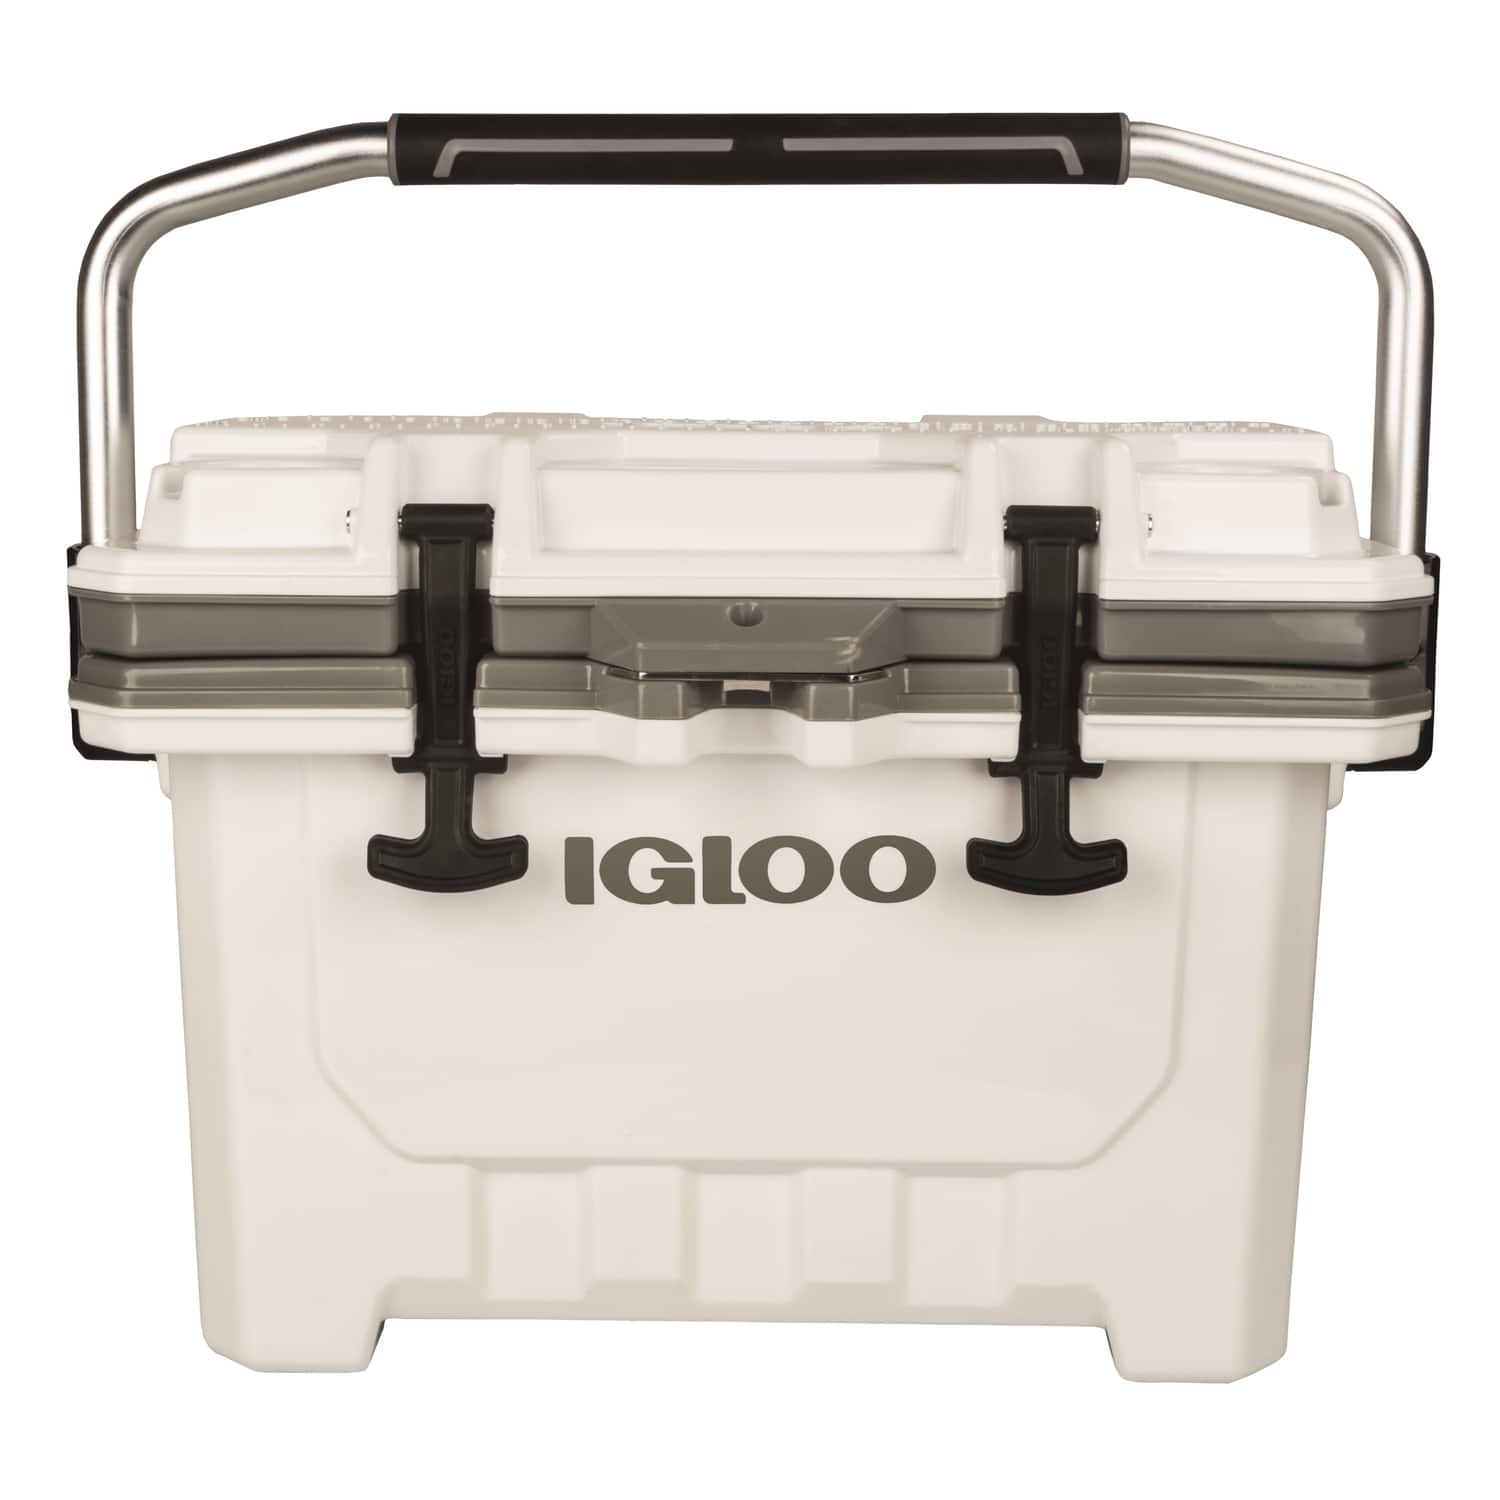 Ace Hardware - Igloo IMX Coolers: 24 Qt. in White $75, 70 Qt. $150 + Free Store Pickup